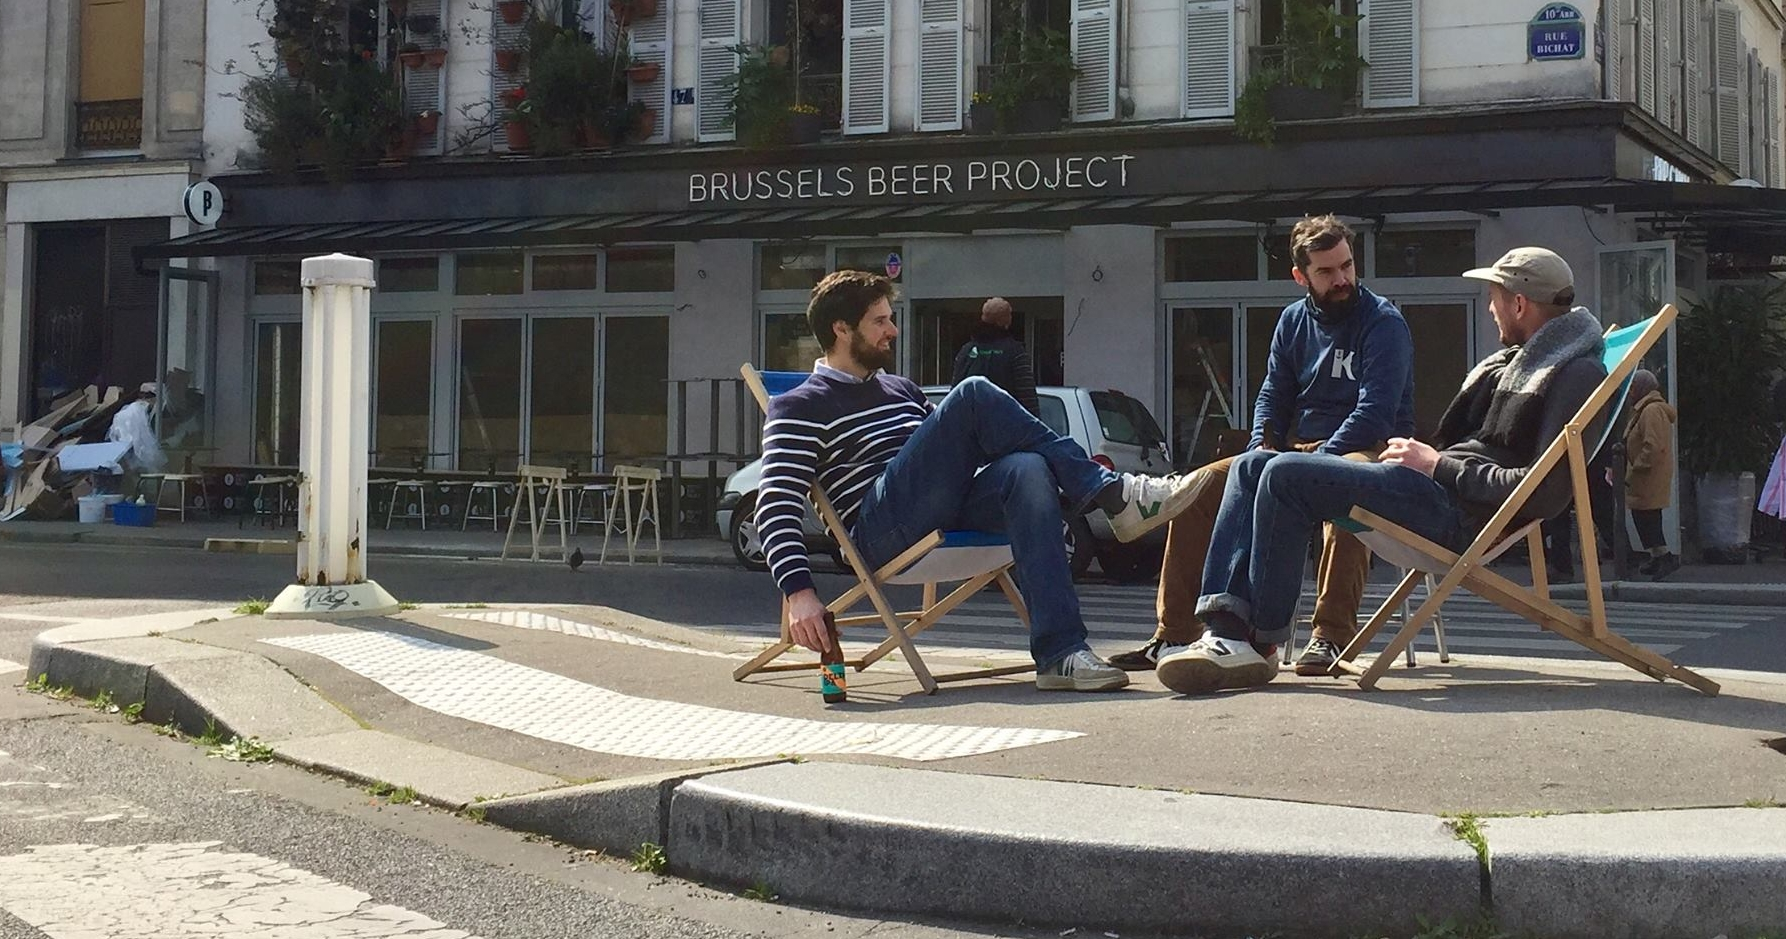 Brussels Beer Project Canal - Rue Bichat, Paris